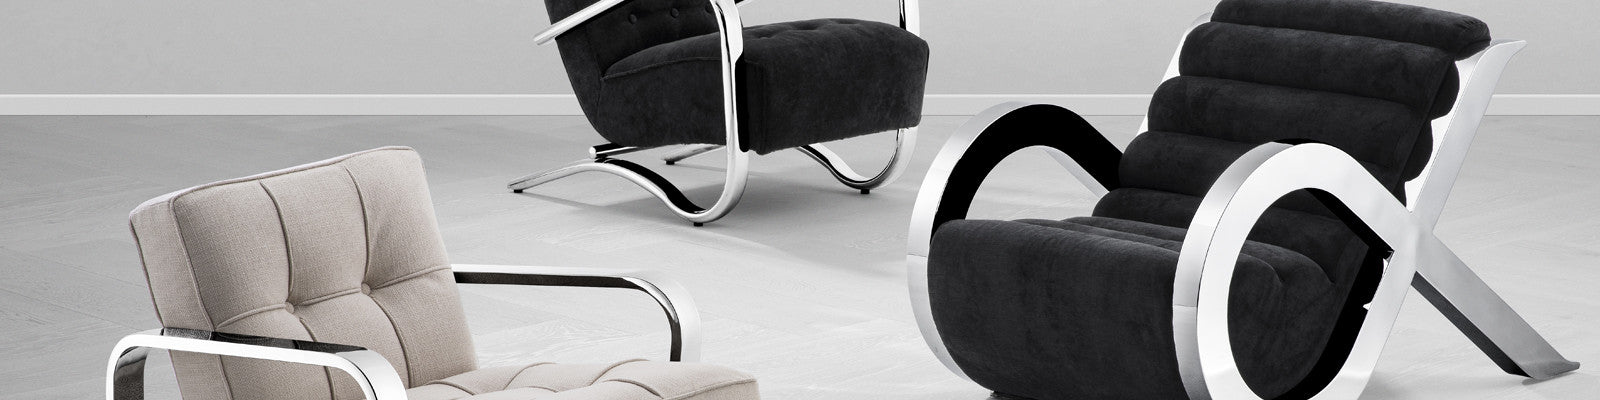 Eichholtz Lounge Chairs | OROA - Affordable Luxury Furniture Online